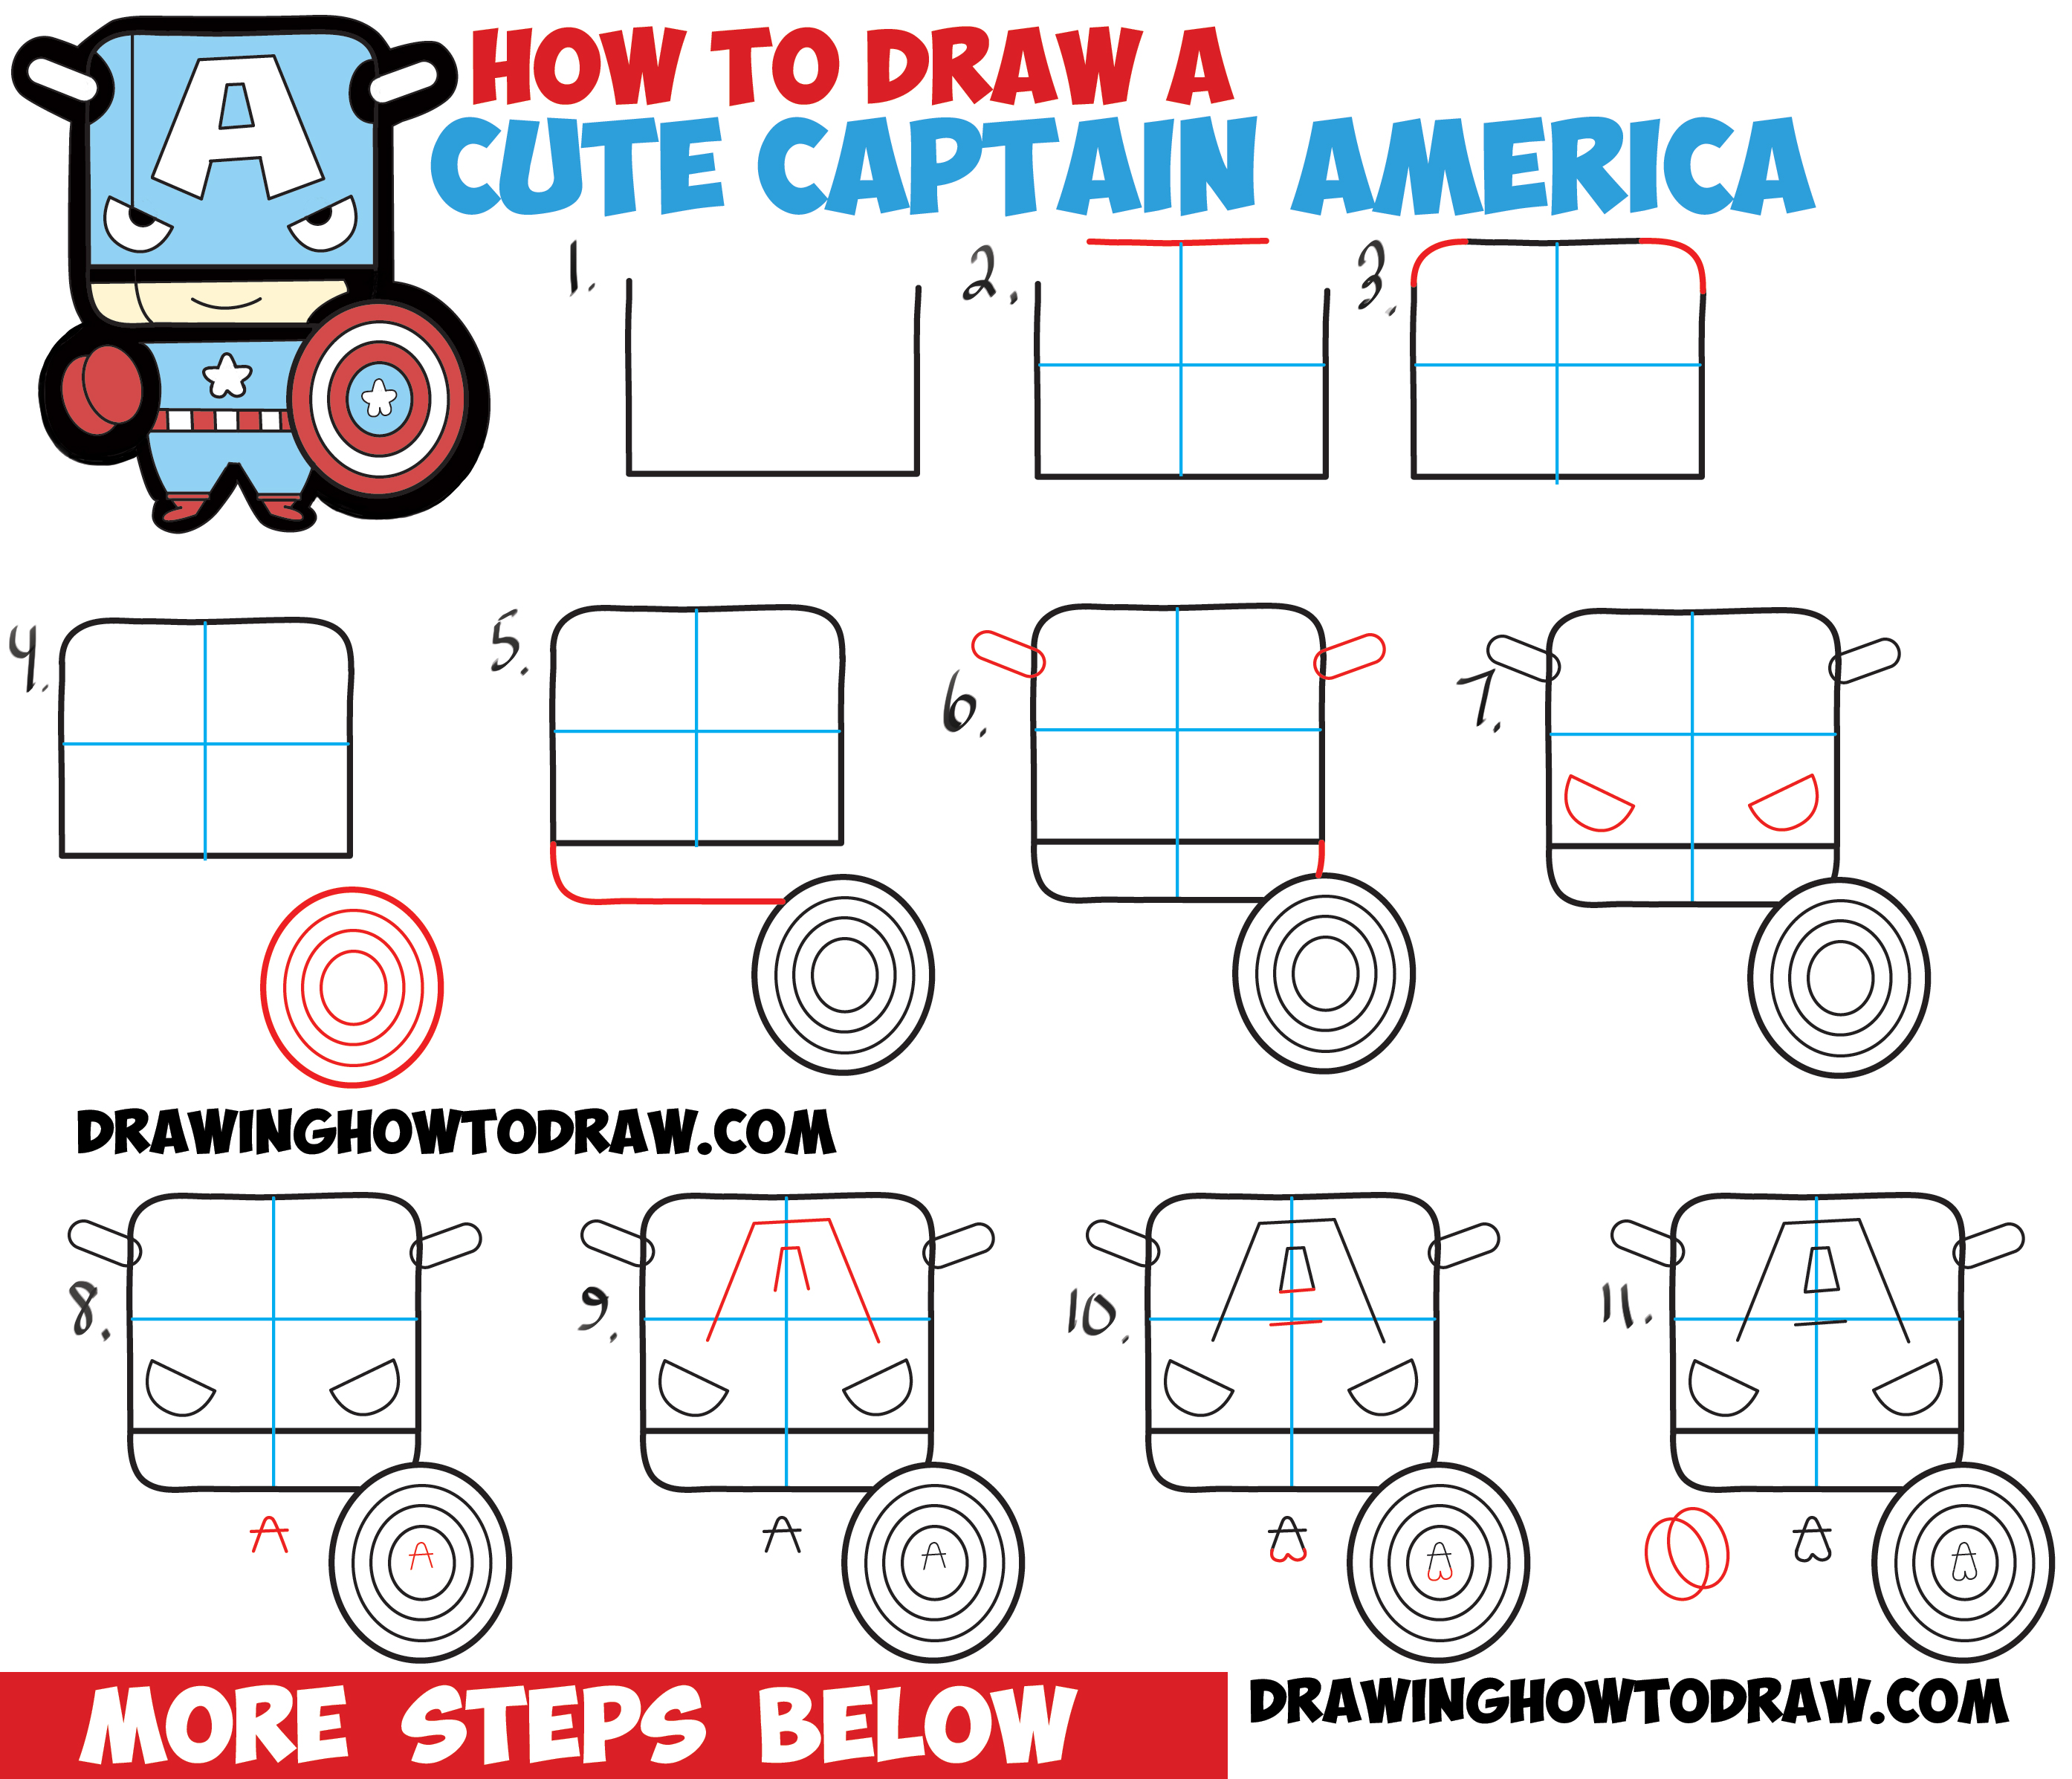 How to Draw Cute Captain American in Chibi Kawaii Style from Marvel Comics - Easy Drawing Tutorial for Kids